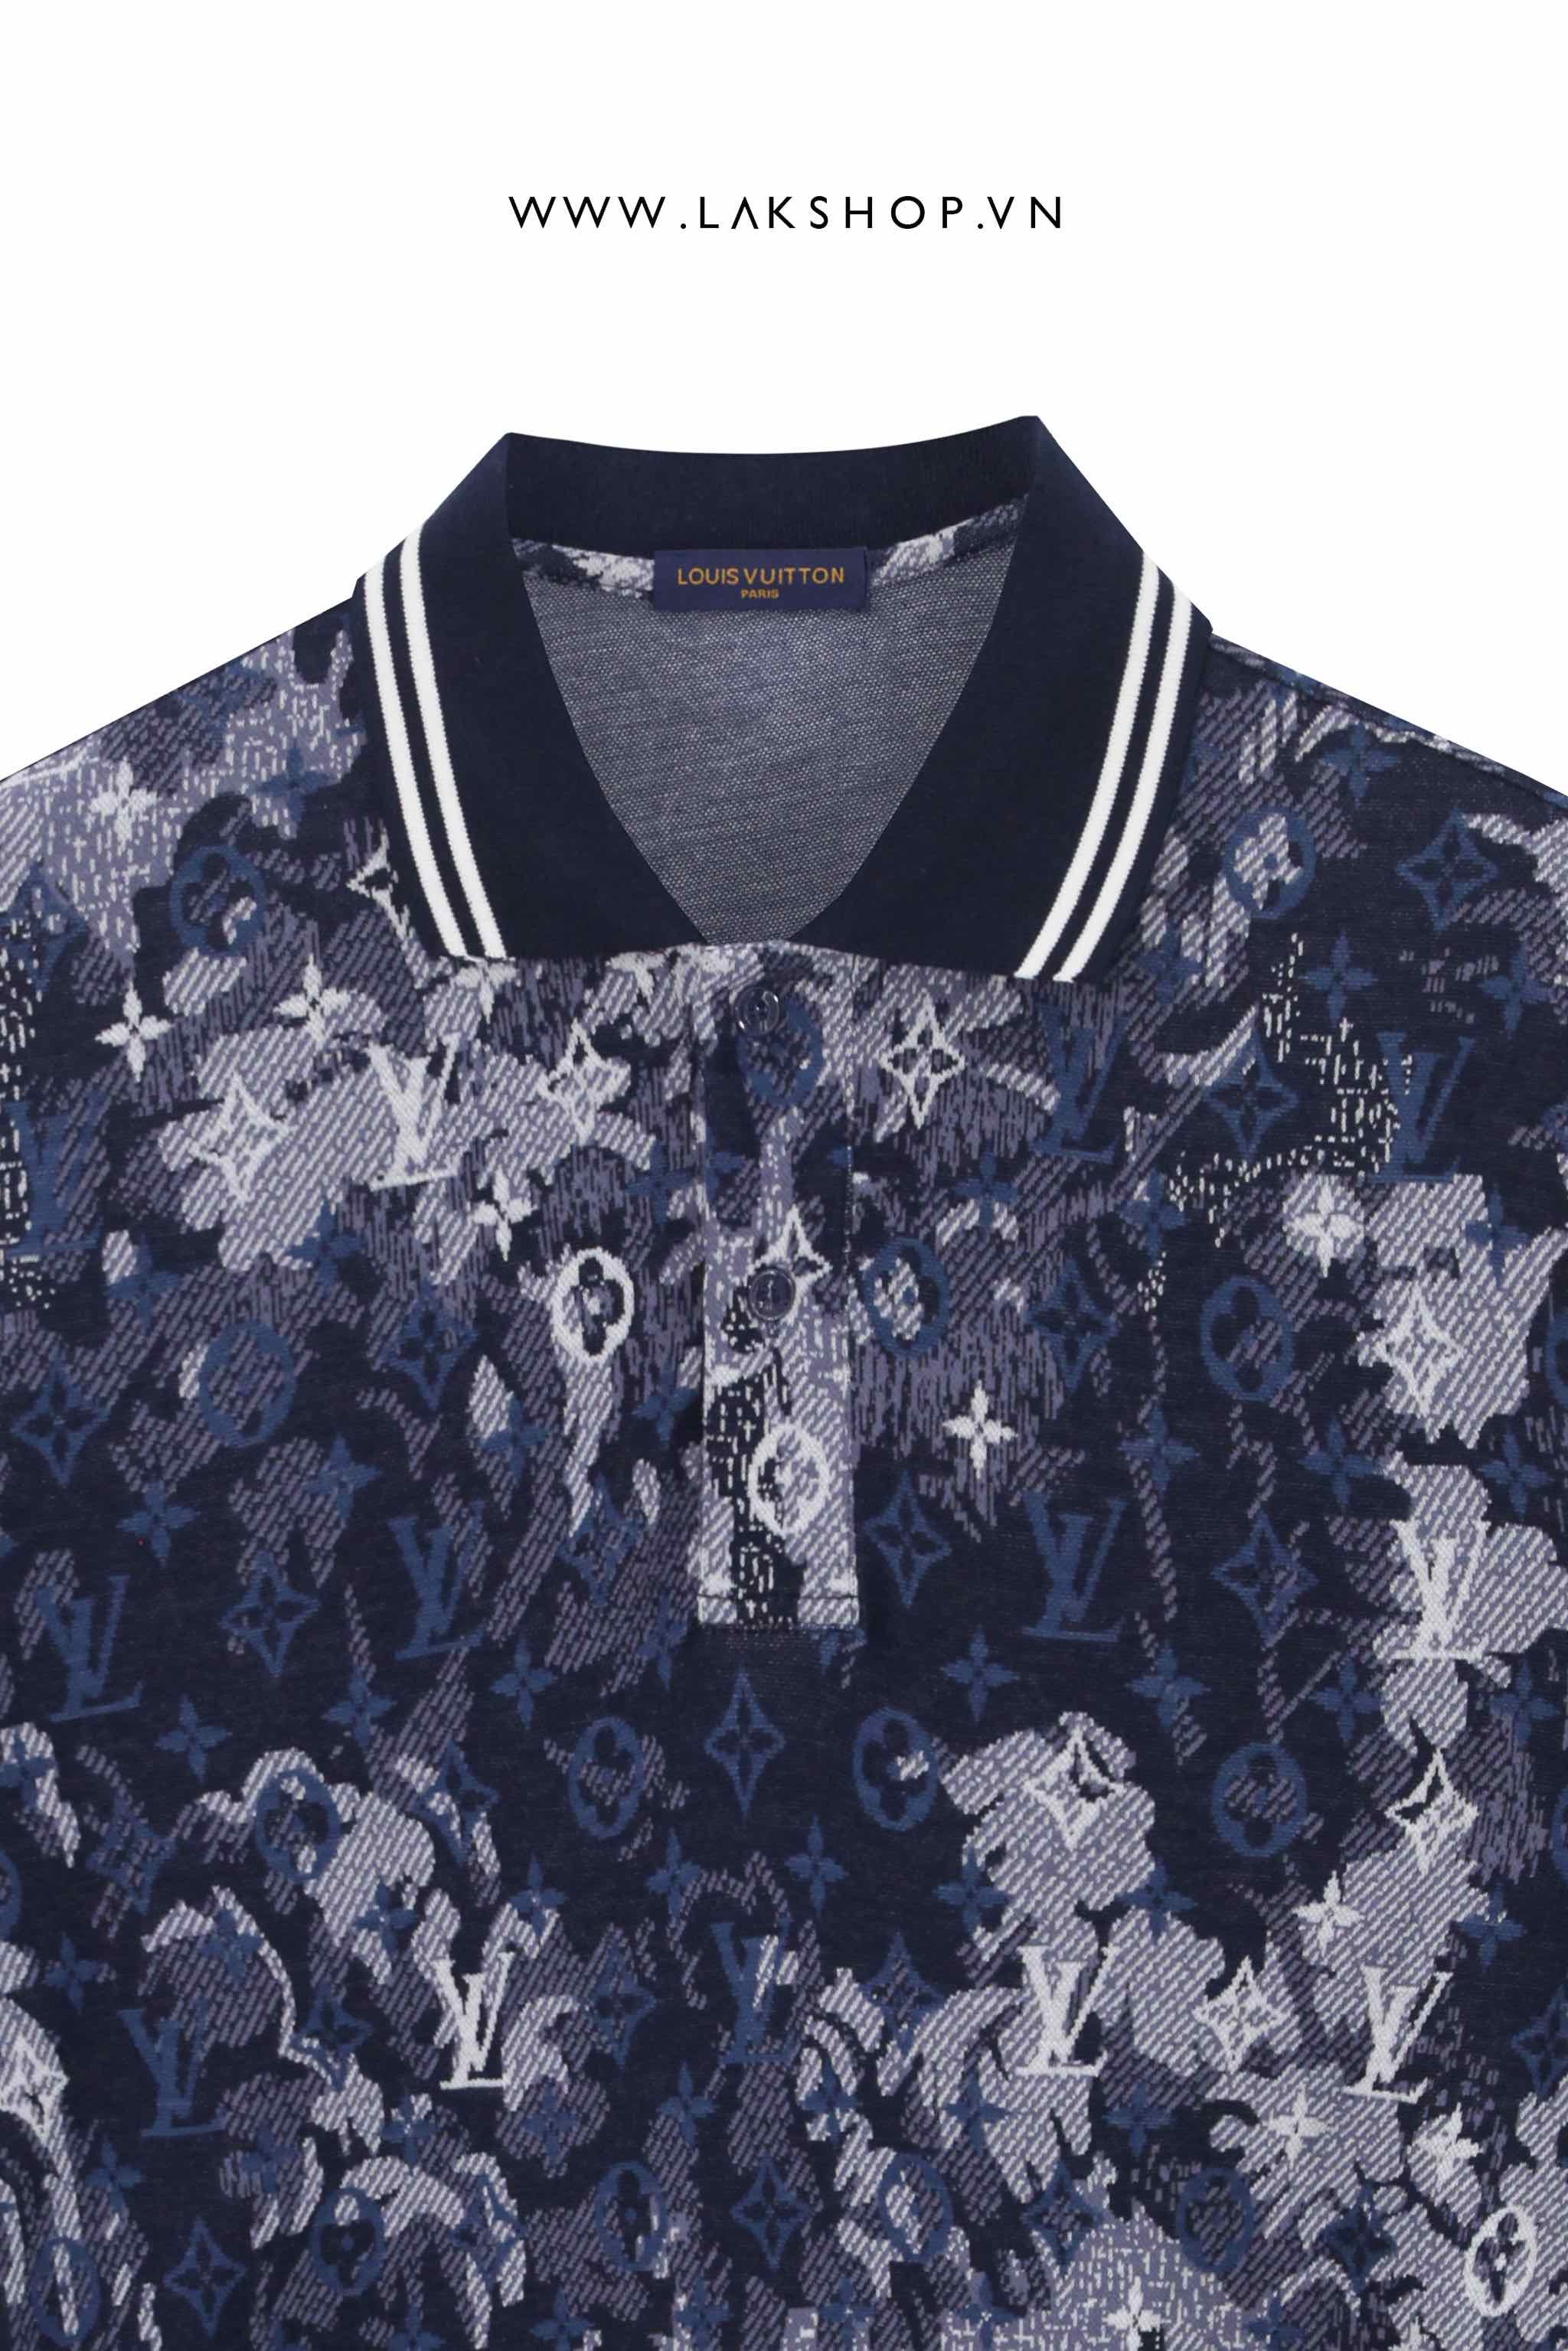 Louis Vuitton Hawaiian Tapestry Jacquard Blue Polo Shirt